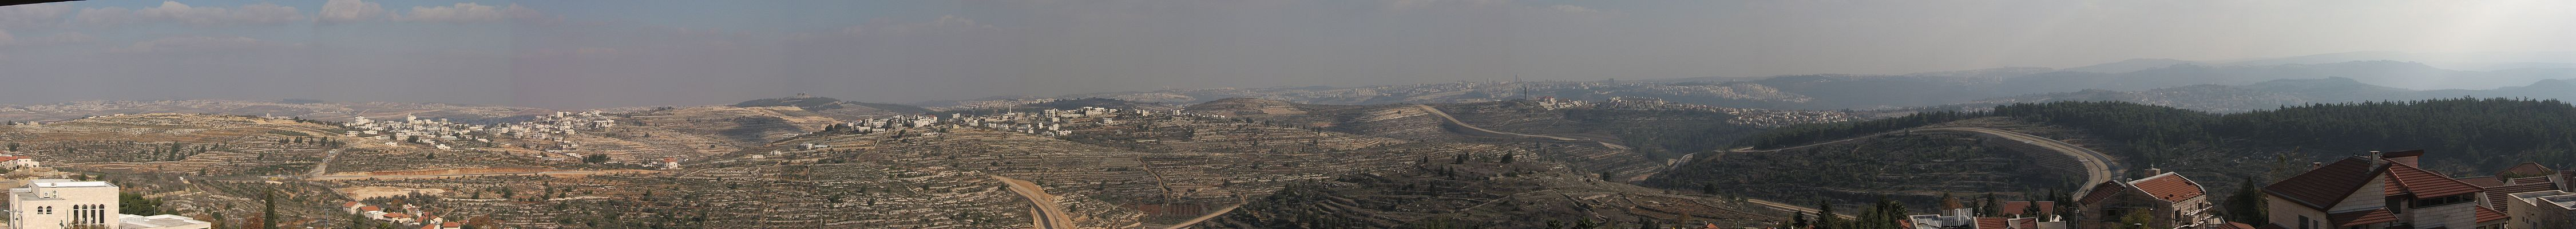 The panoramic view from the watchtower of Har Adar, Israel.